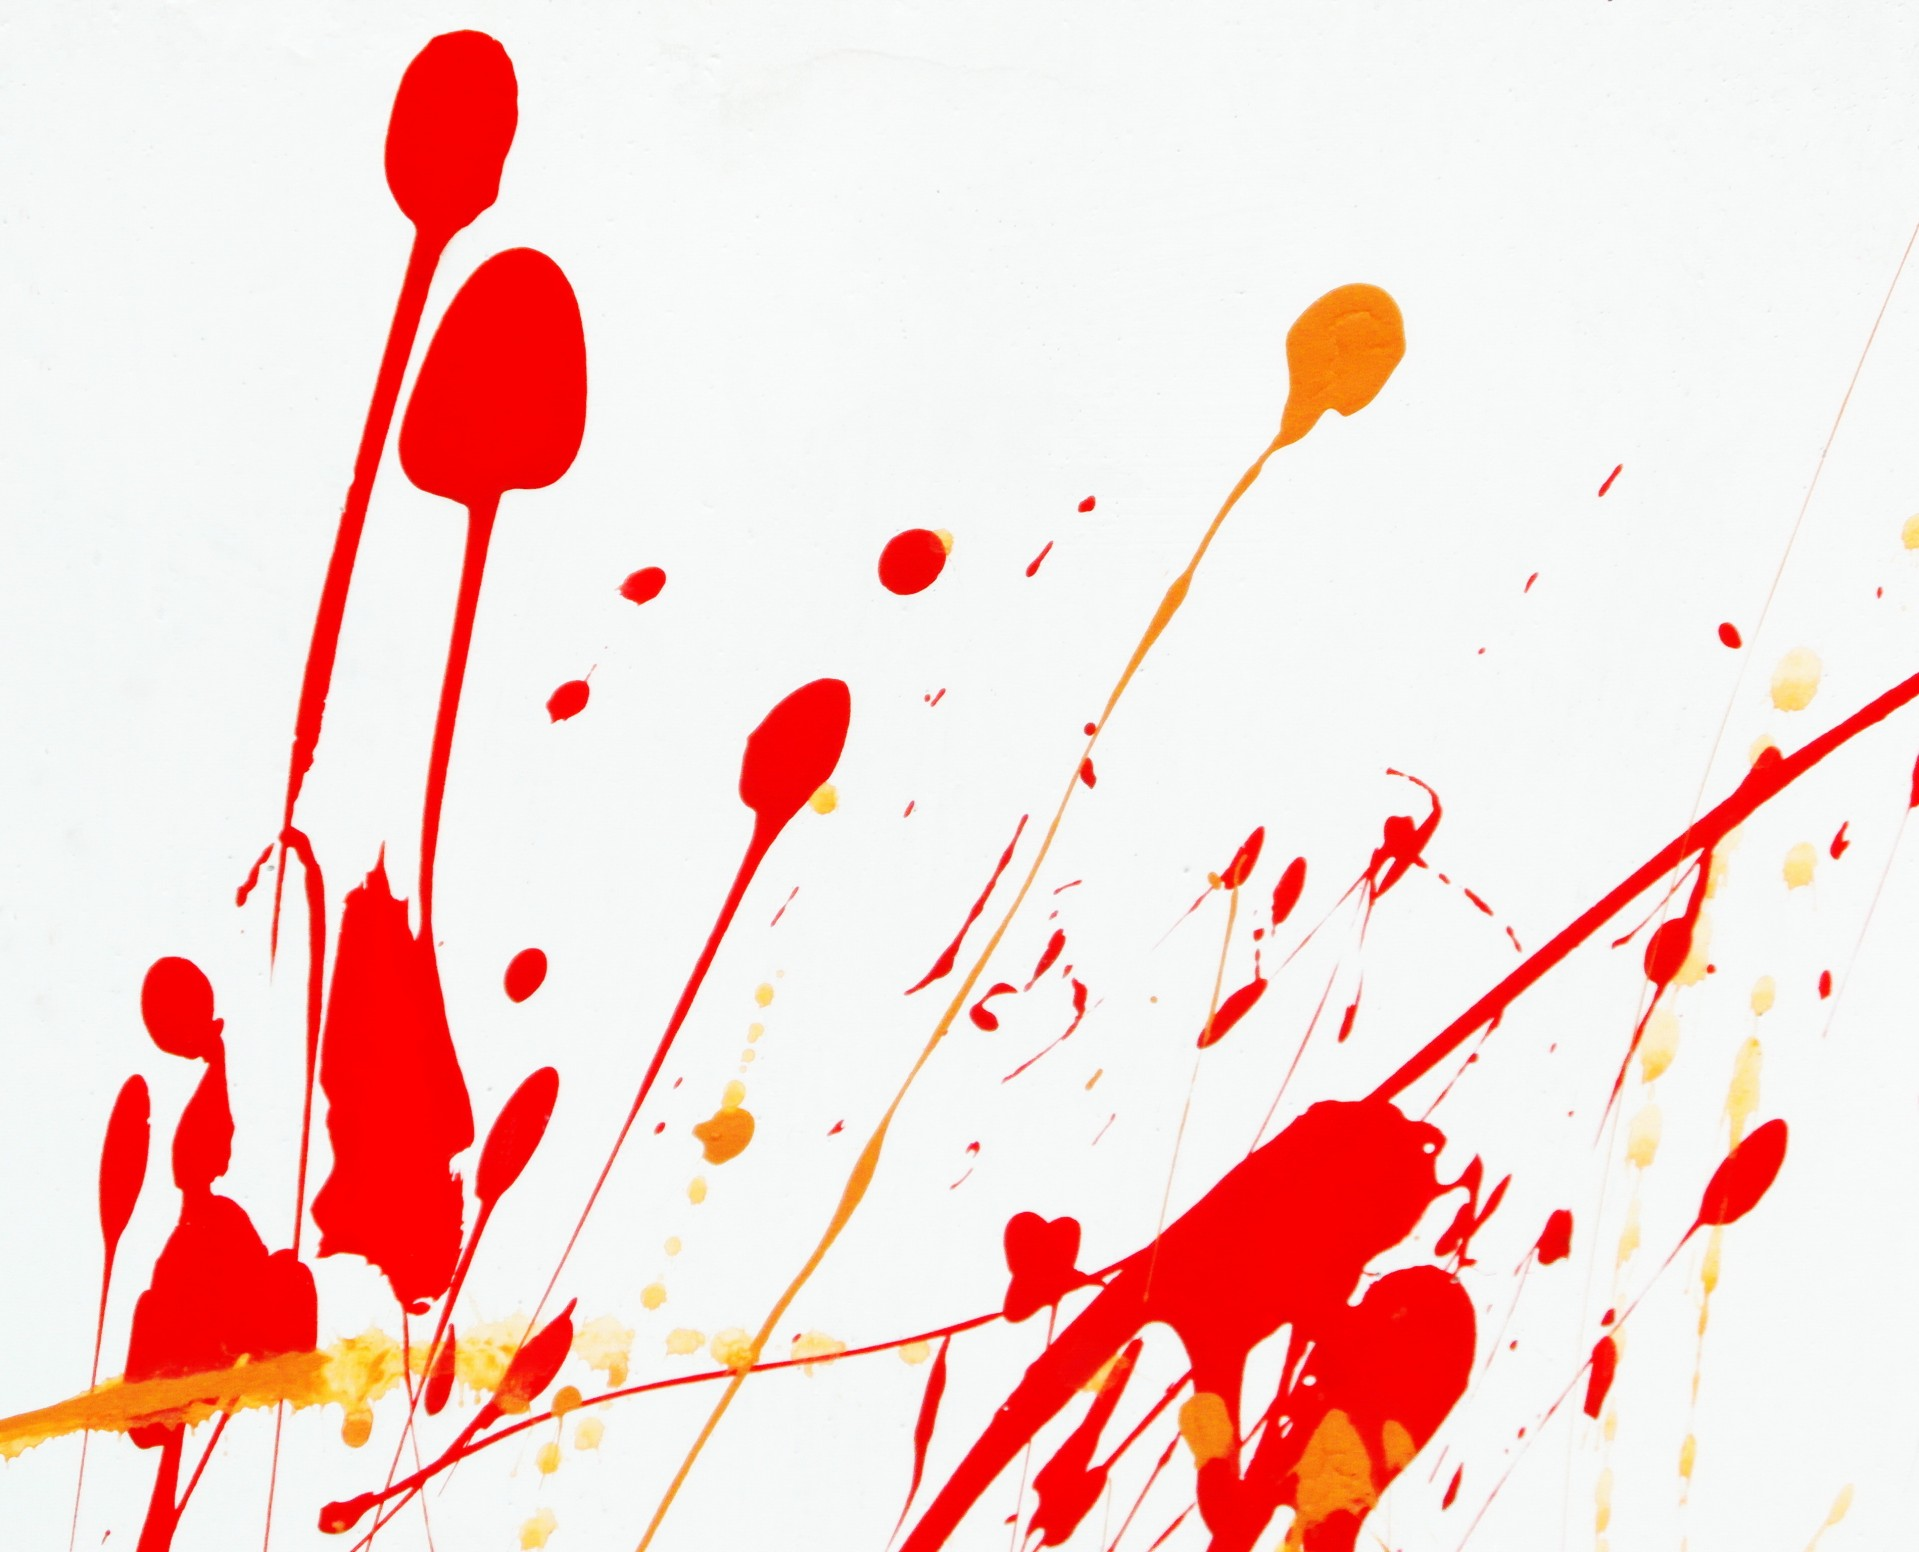 Abstract Paint Splat Free Stock Photo - Public Domain Pictures